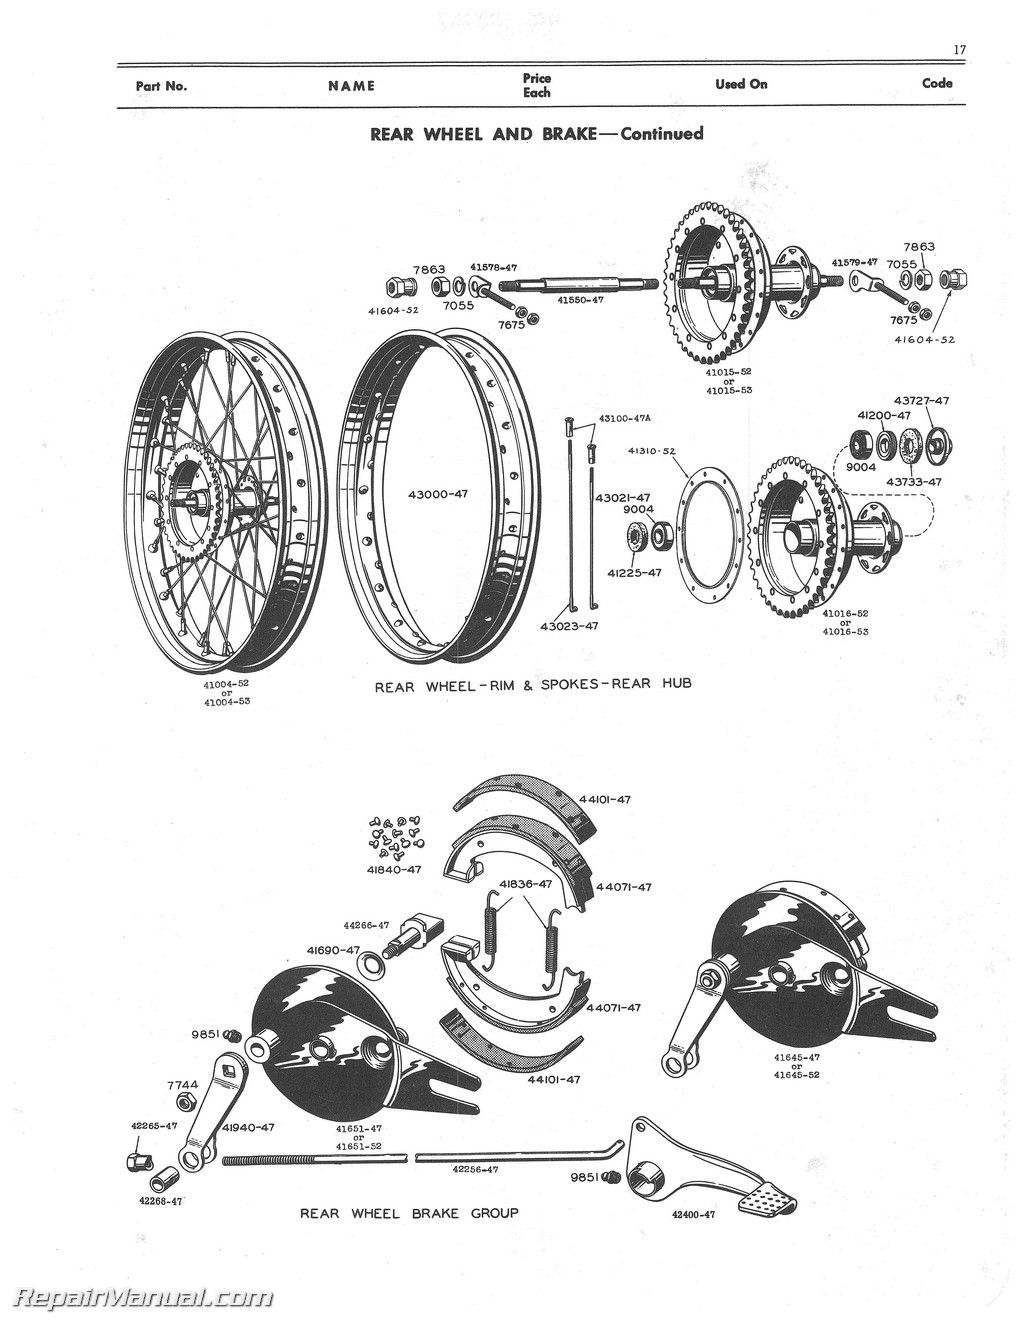 Motorcycle Parts Manual